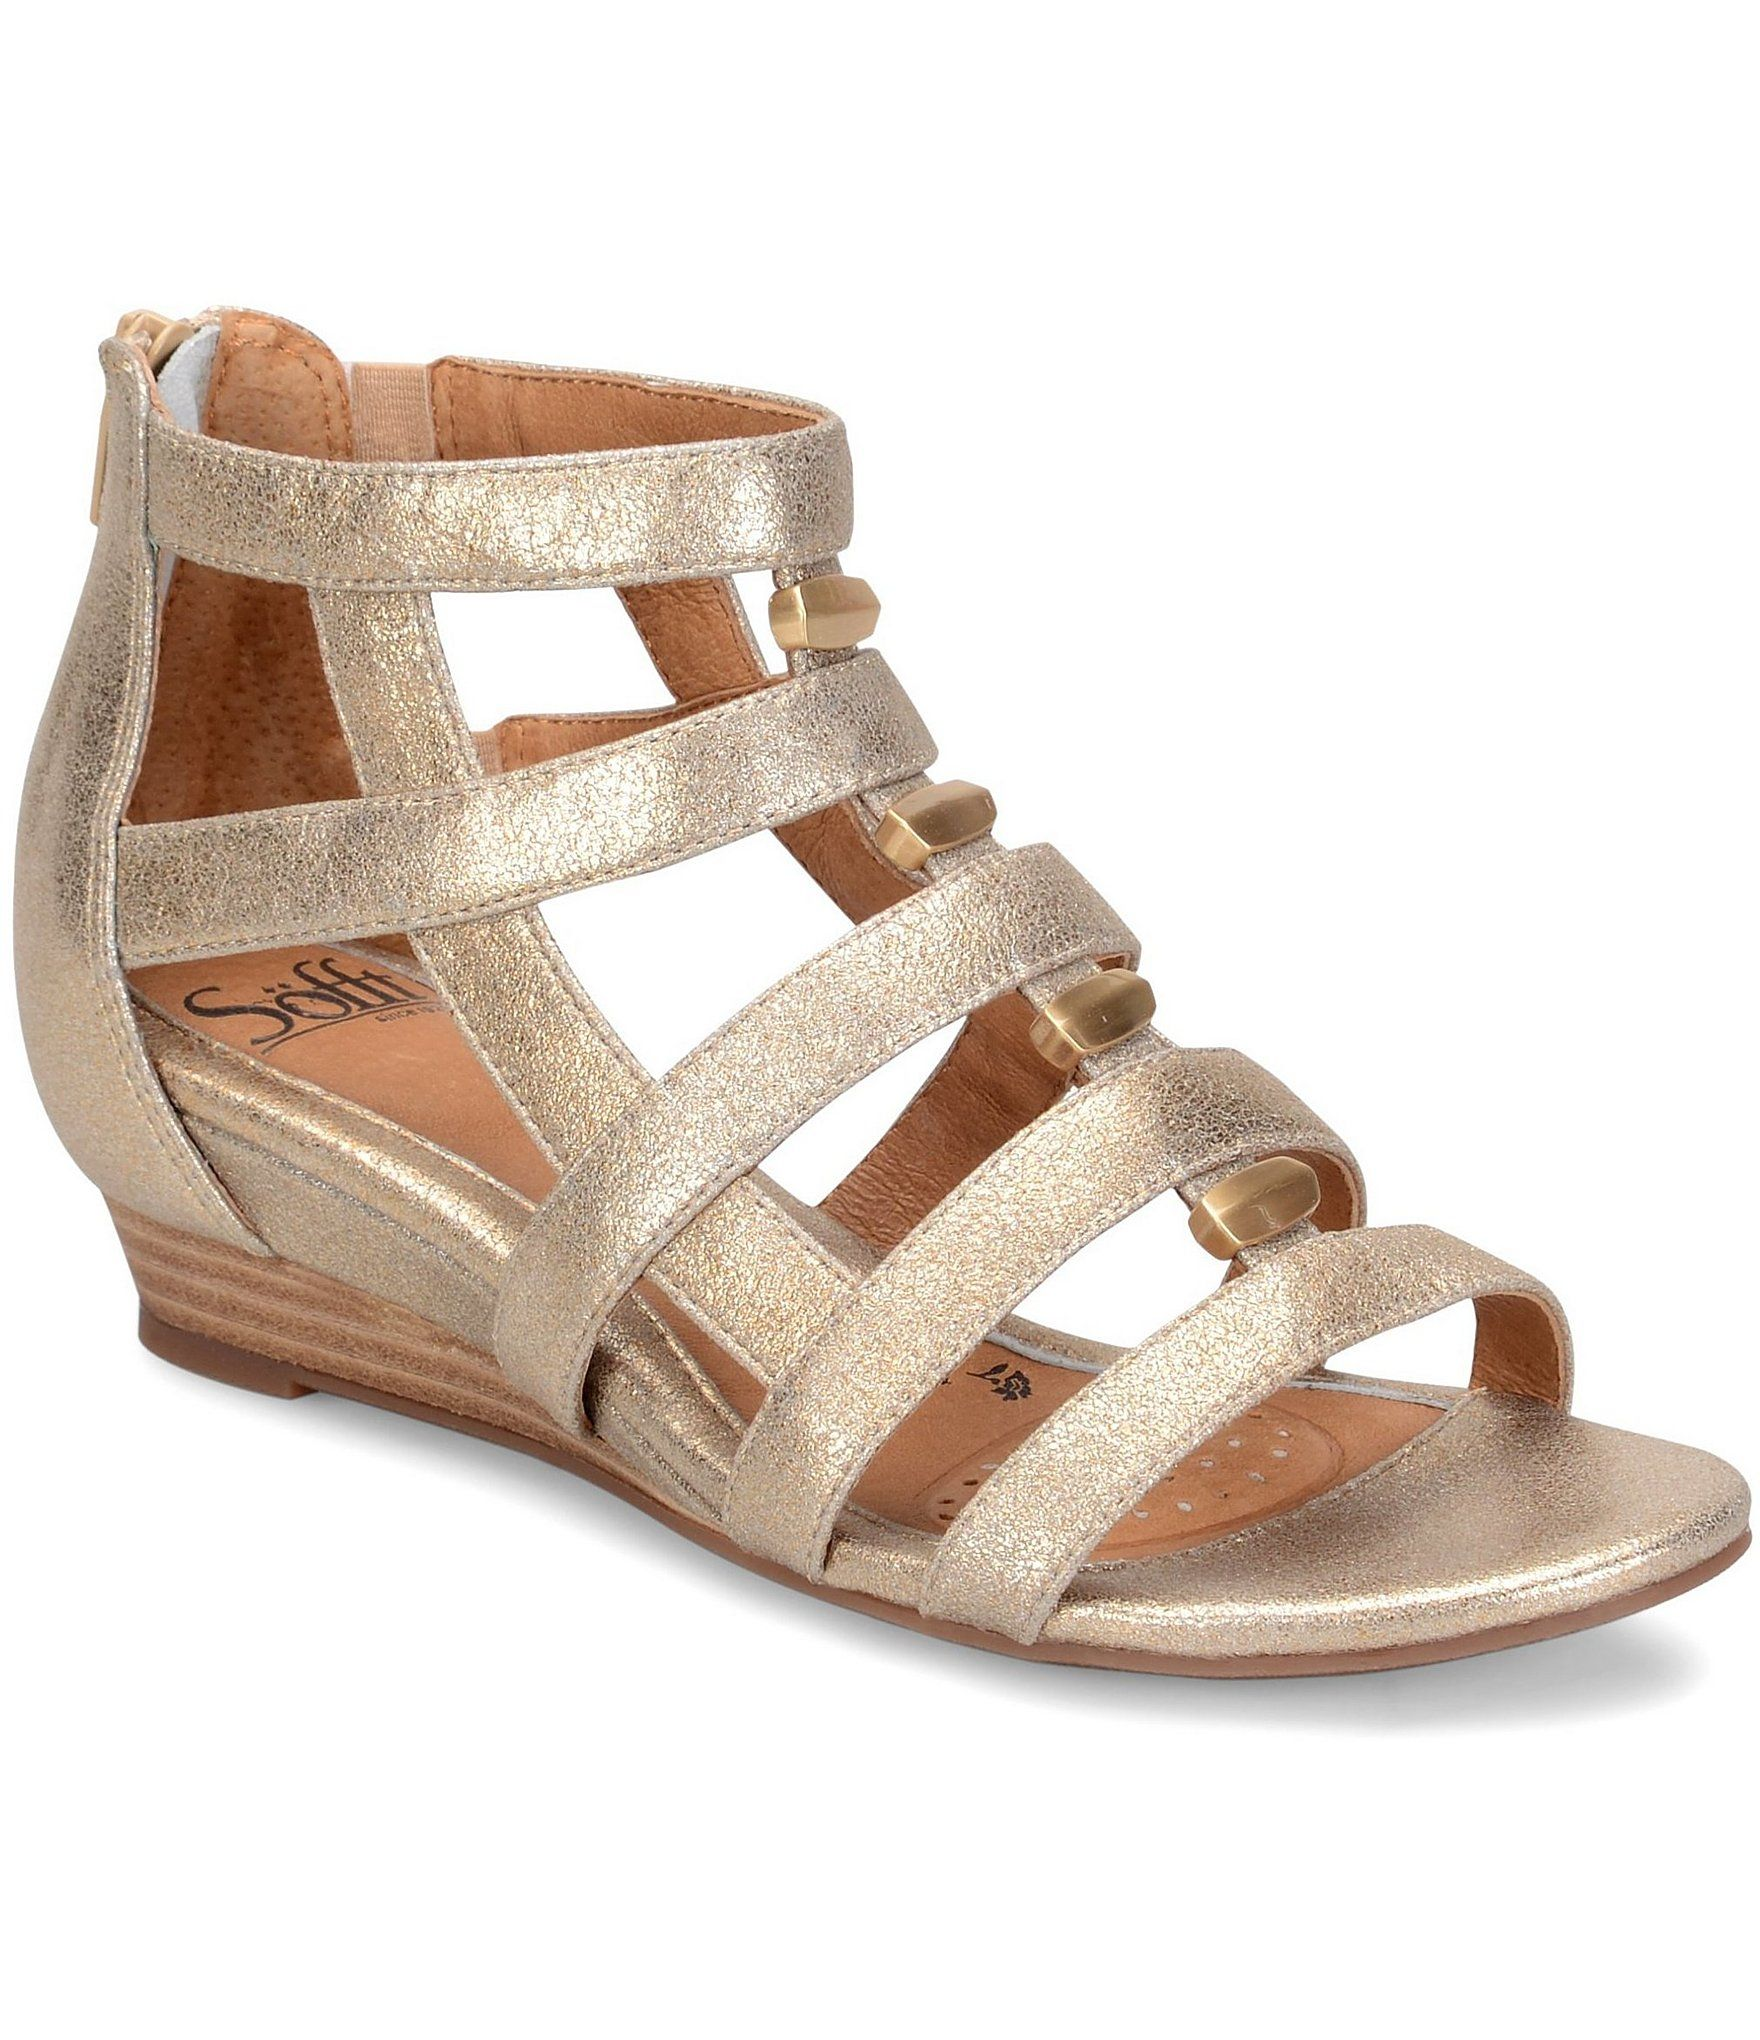 Sofft Rio Metallic Leather and Suede Wedges #Dillards